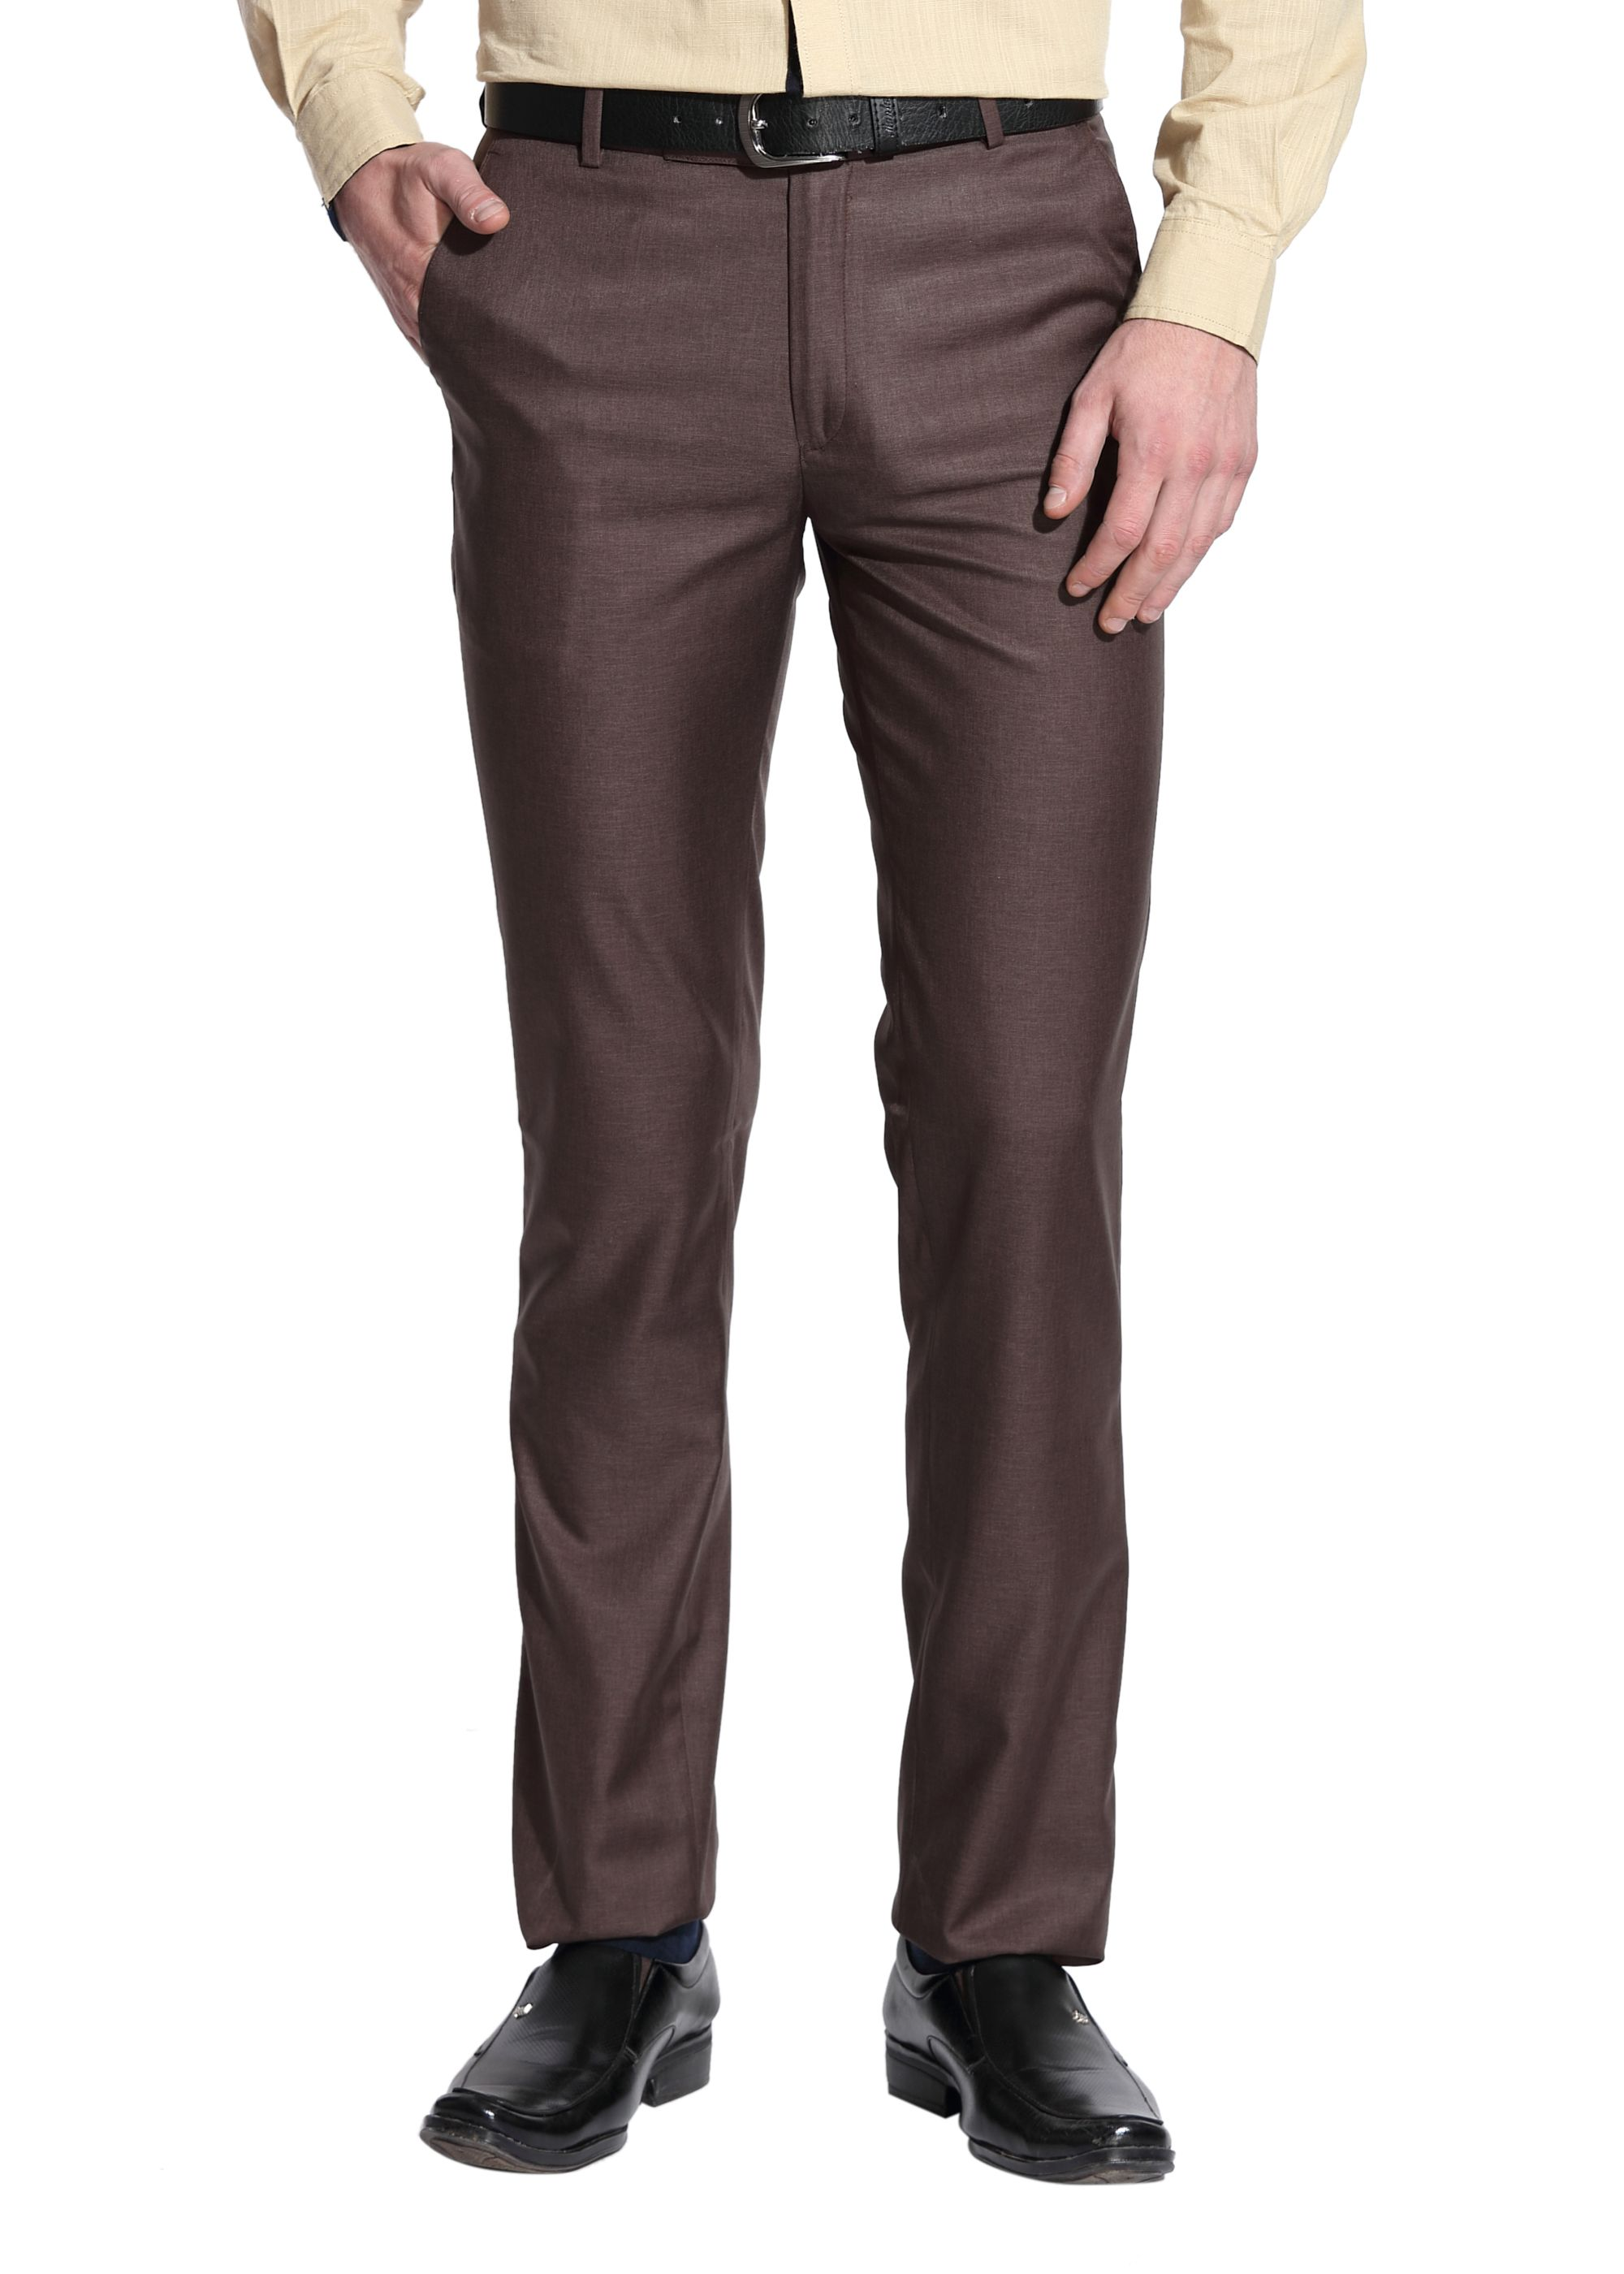 Le Bison Brown Slim -Fit Flat Trousers